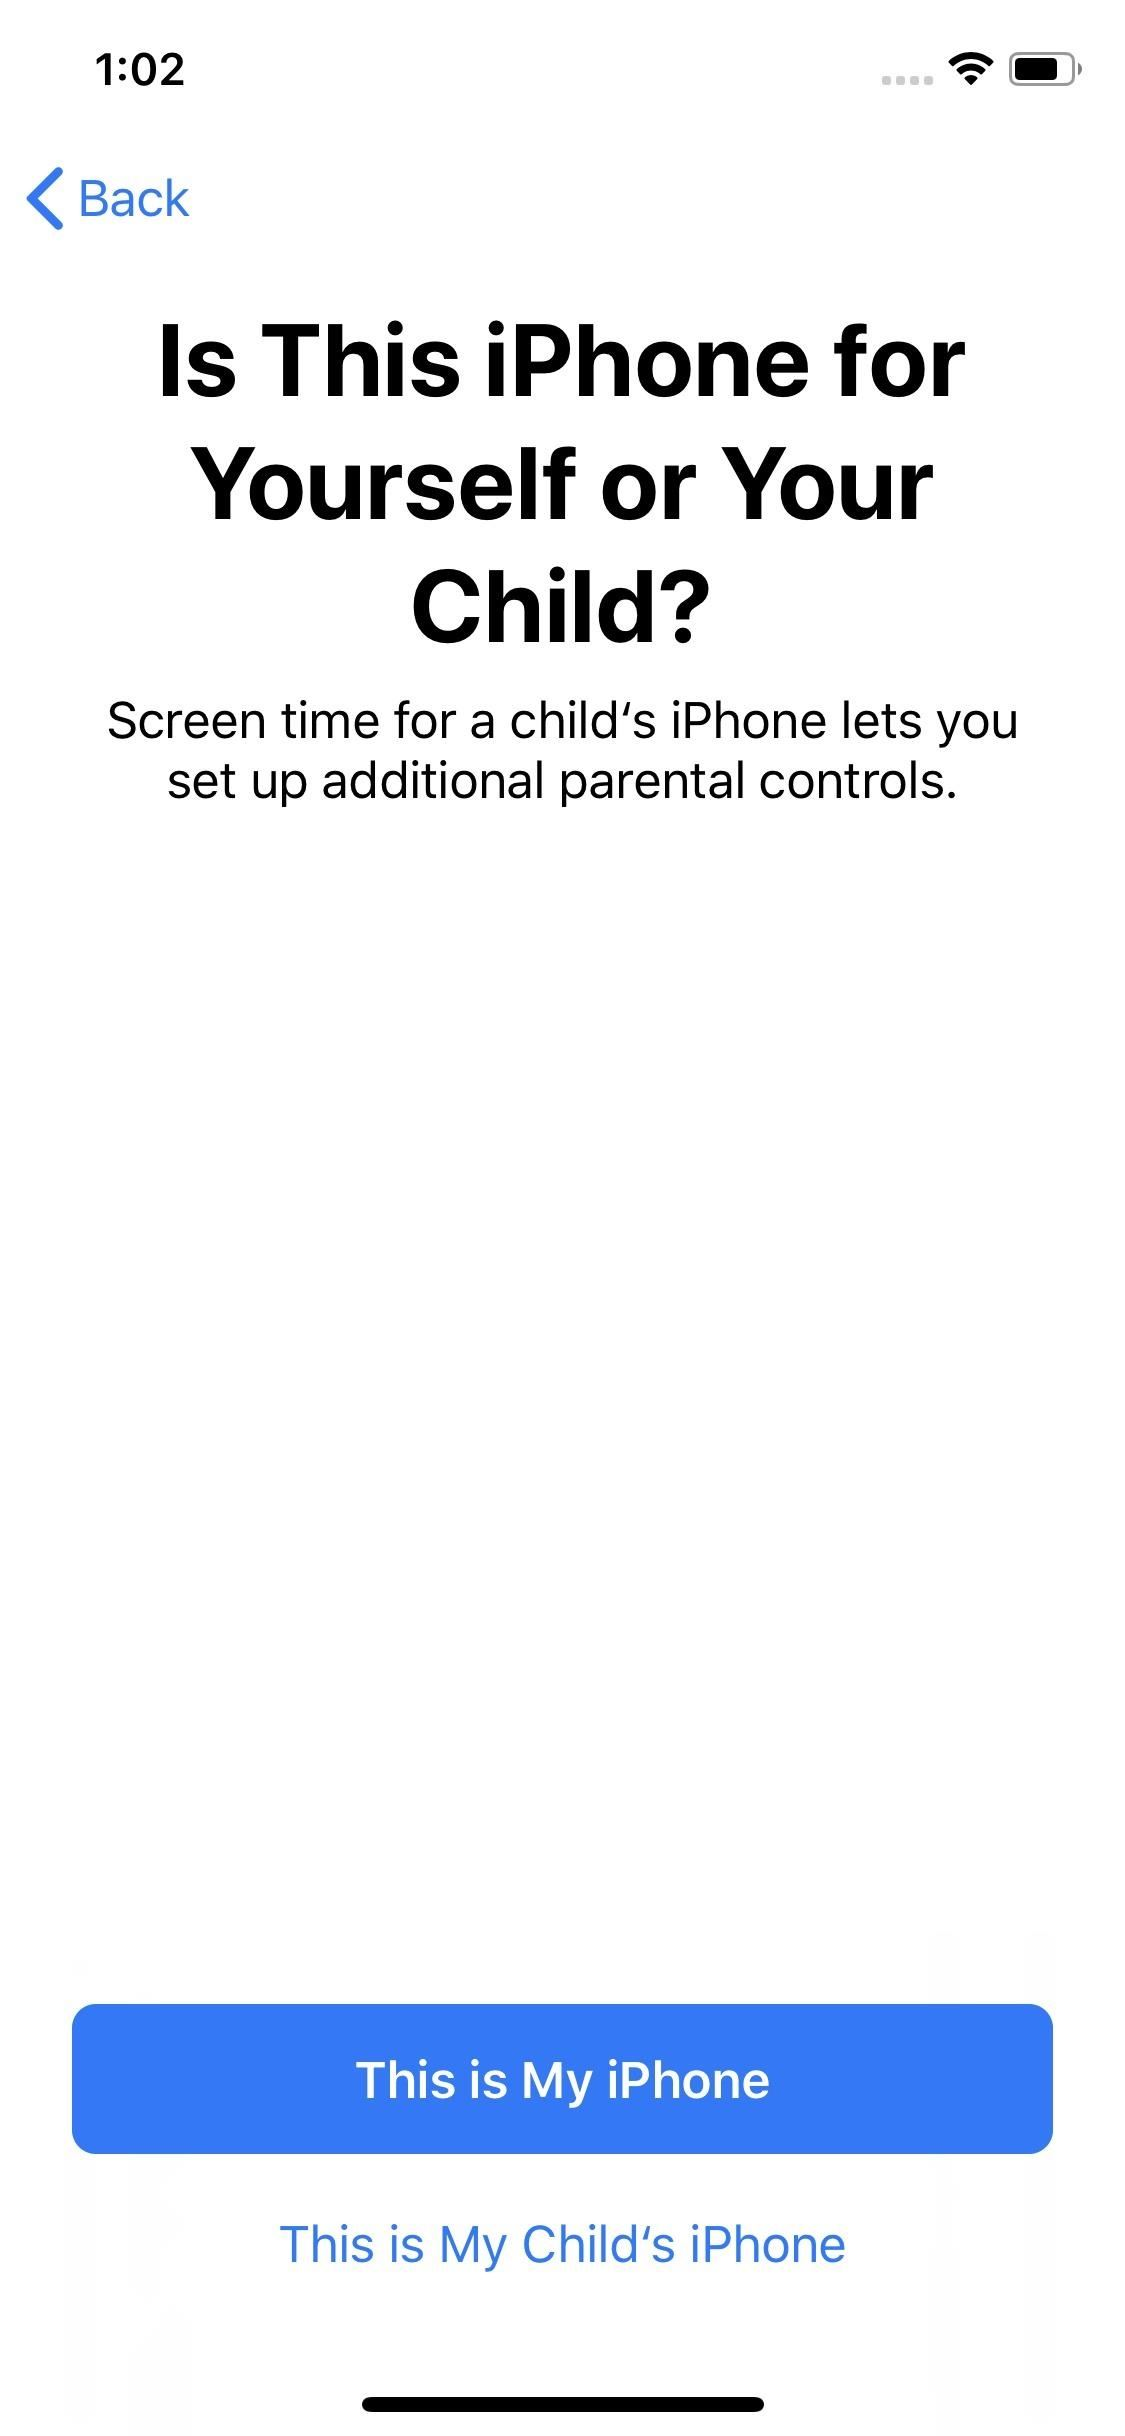 Setting downtime in iOS 12 to keep your child (or yourself) distracted [19659009] Now you can set the start and end times for downtime simply by tapping both. &quot;Start&quot; and &quot;End&quot; and select the desired times for downtime to start and stop. During these hours, most apps are not available unless the passcode is entered (more on that later). When you are satisfied with the settings, tap &quot;Set Downtime&quot; to continue. </p><div><script async src=